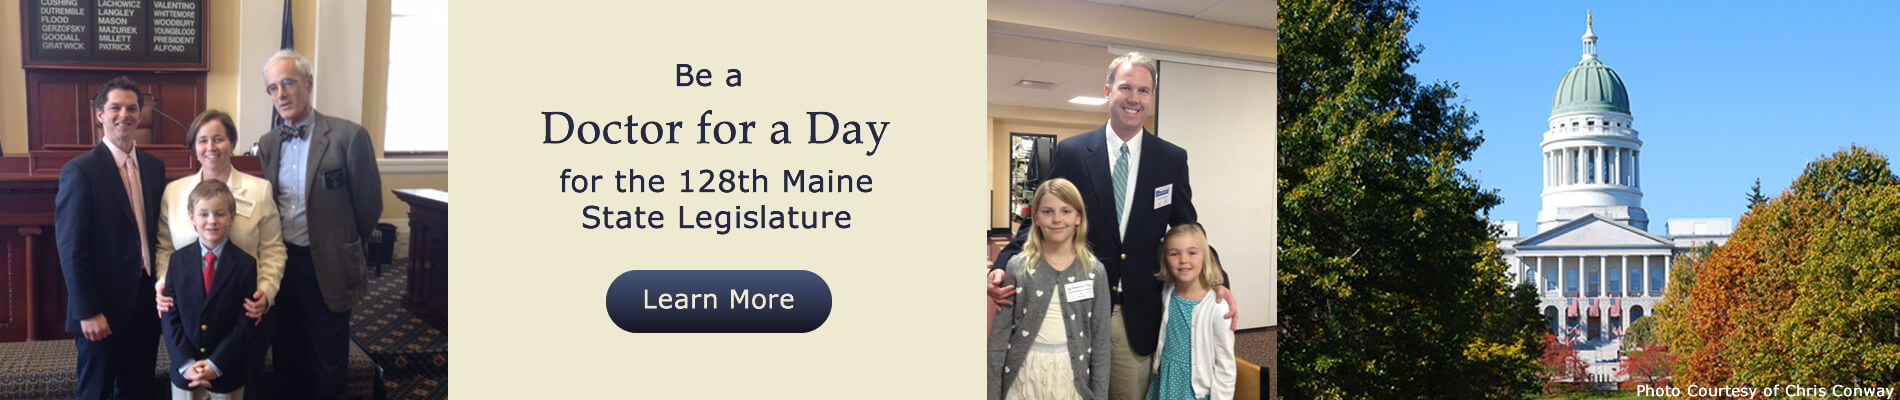 Banner for Doctor for a Day 2017.